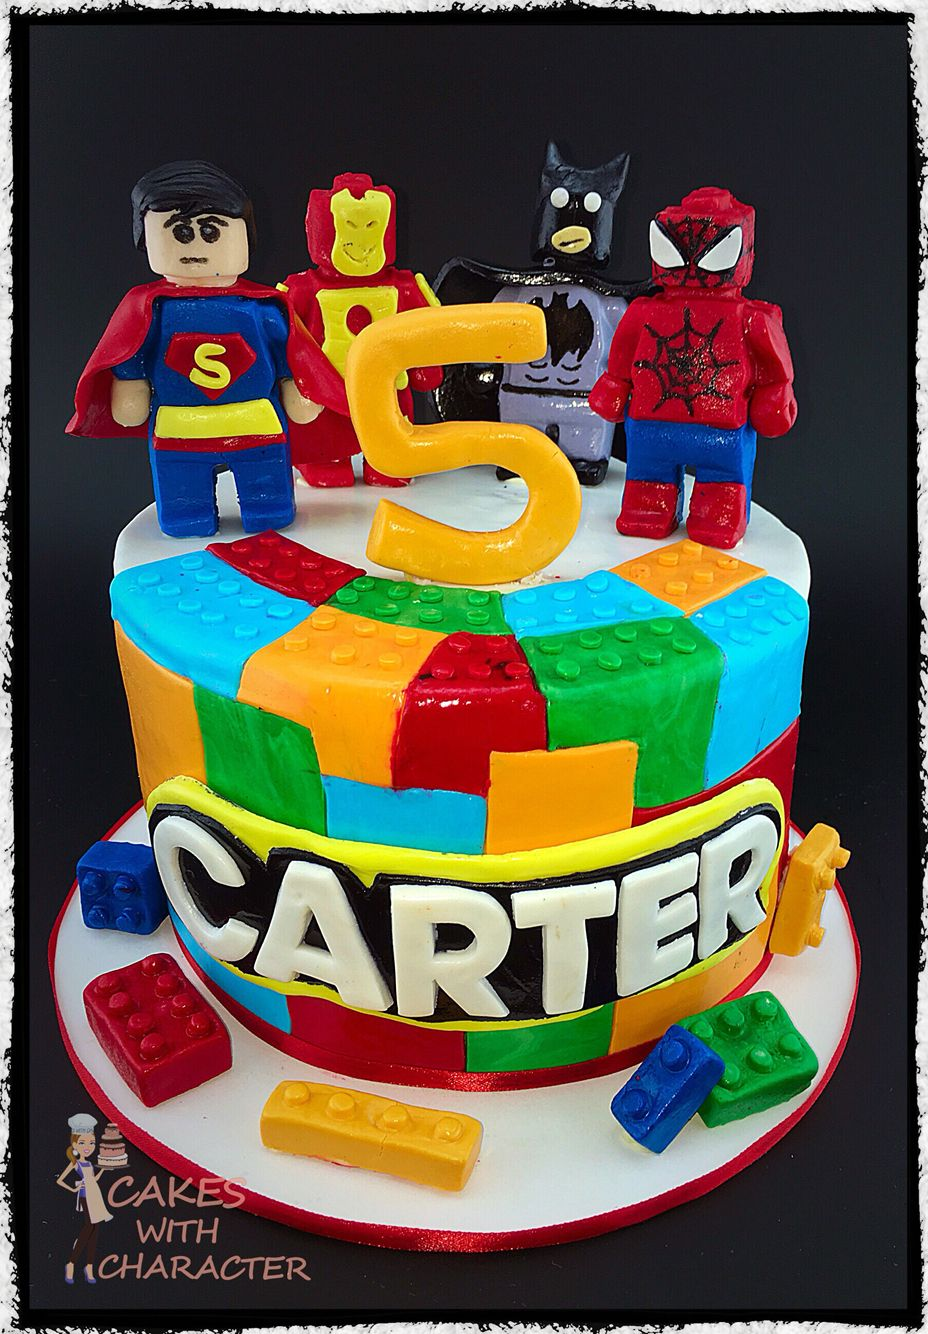 5th birthday Lego cake with avengers themed fondant Lego men